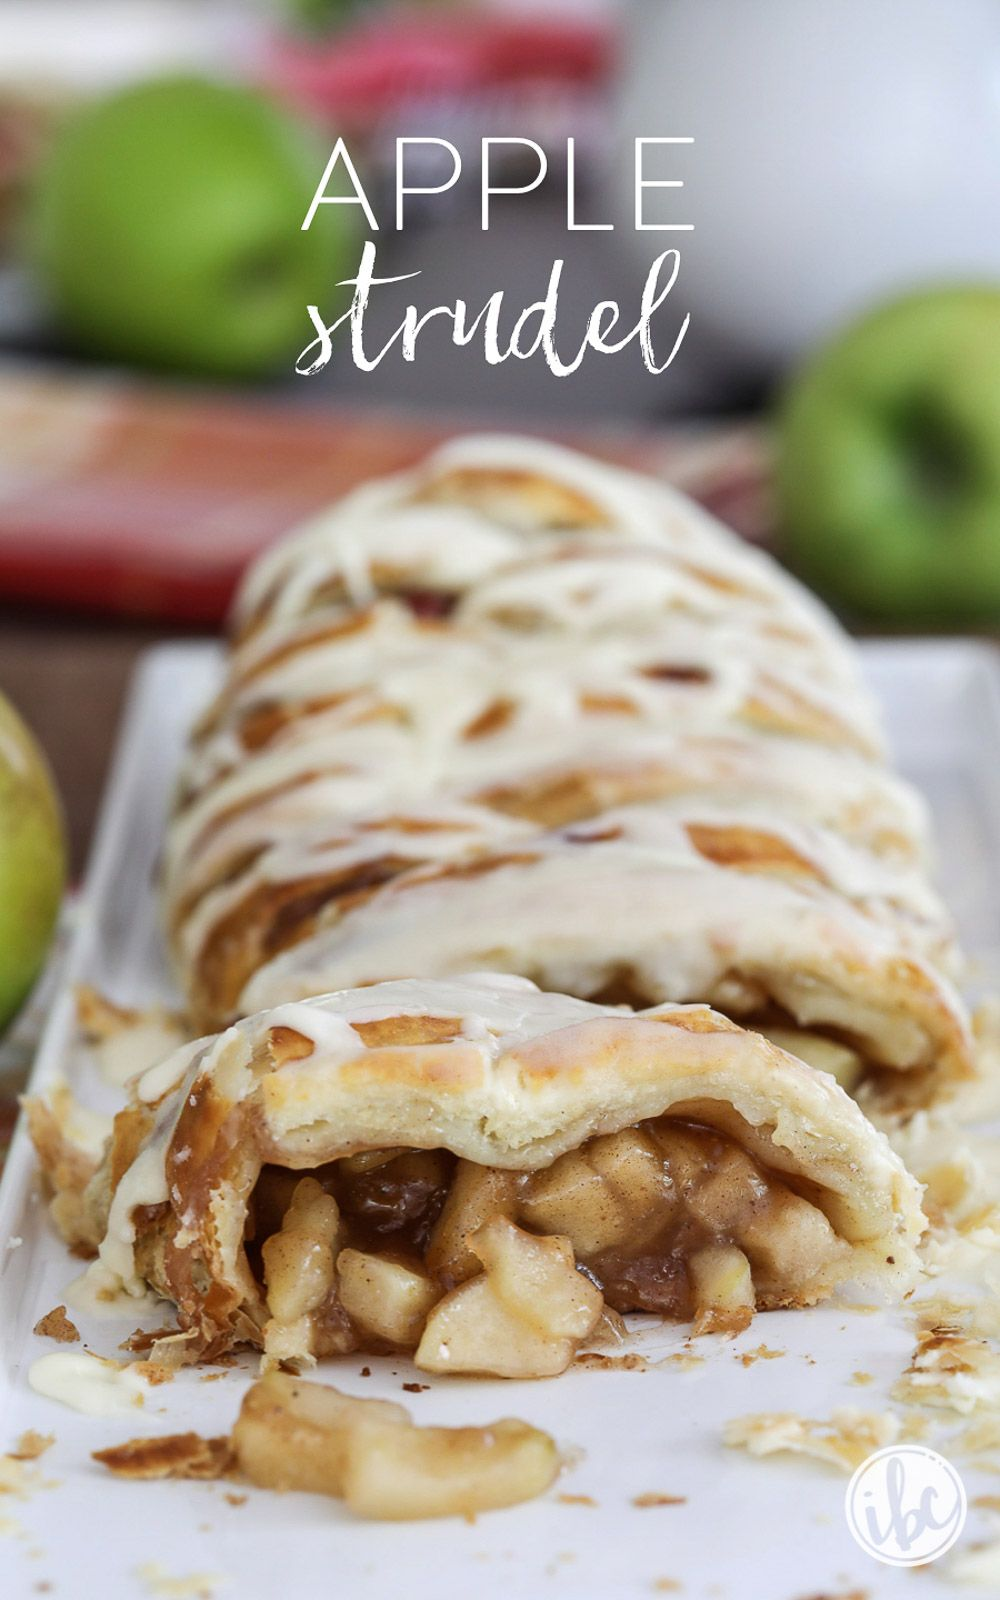 Homemade Apple Strudel Recipe (made with puff pastry)